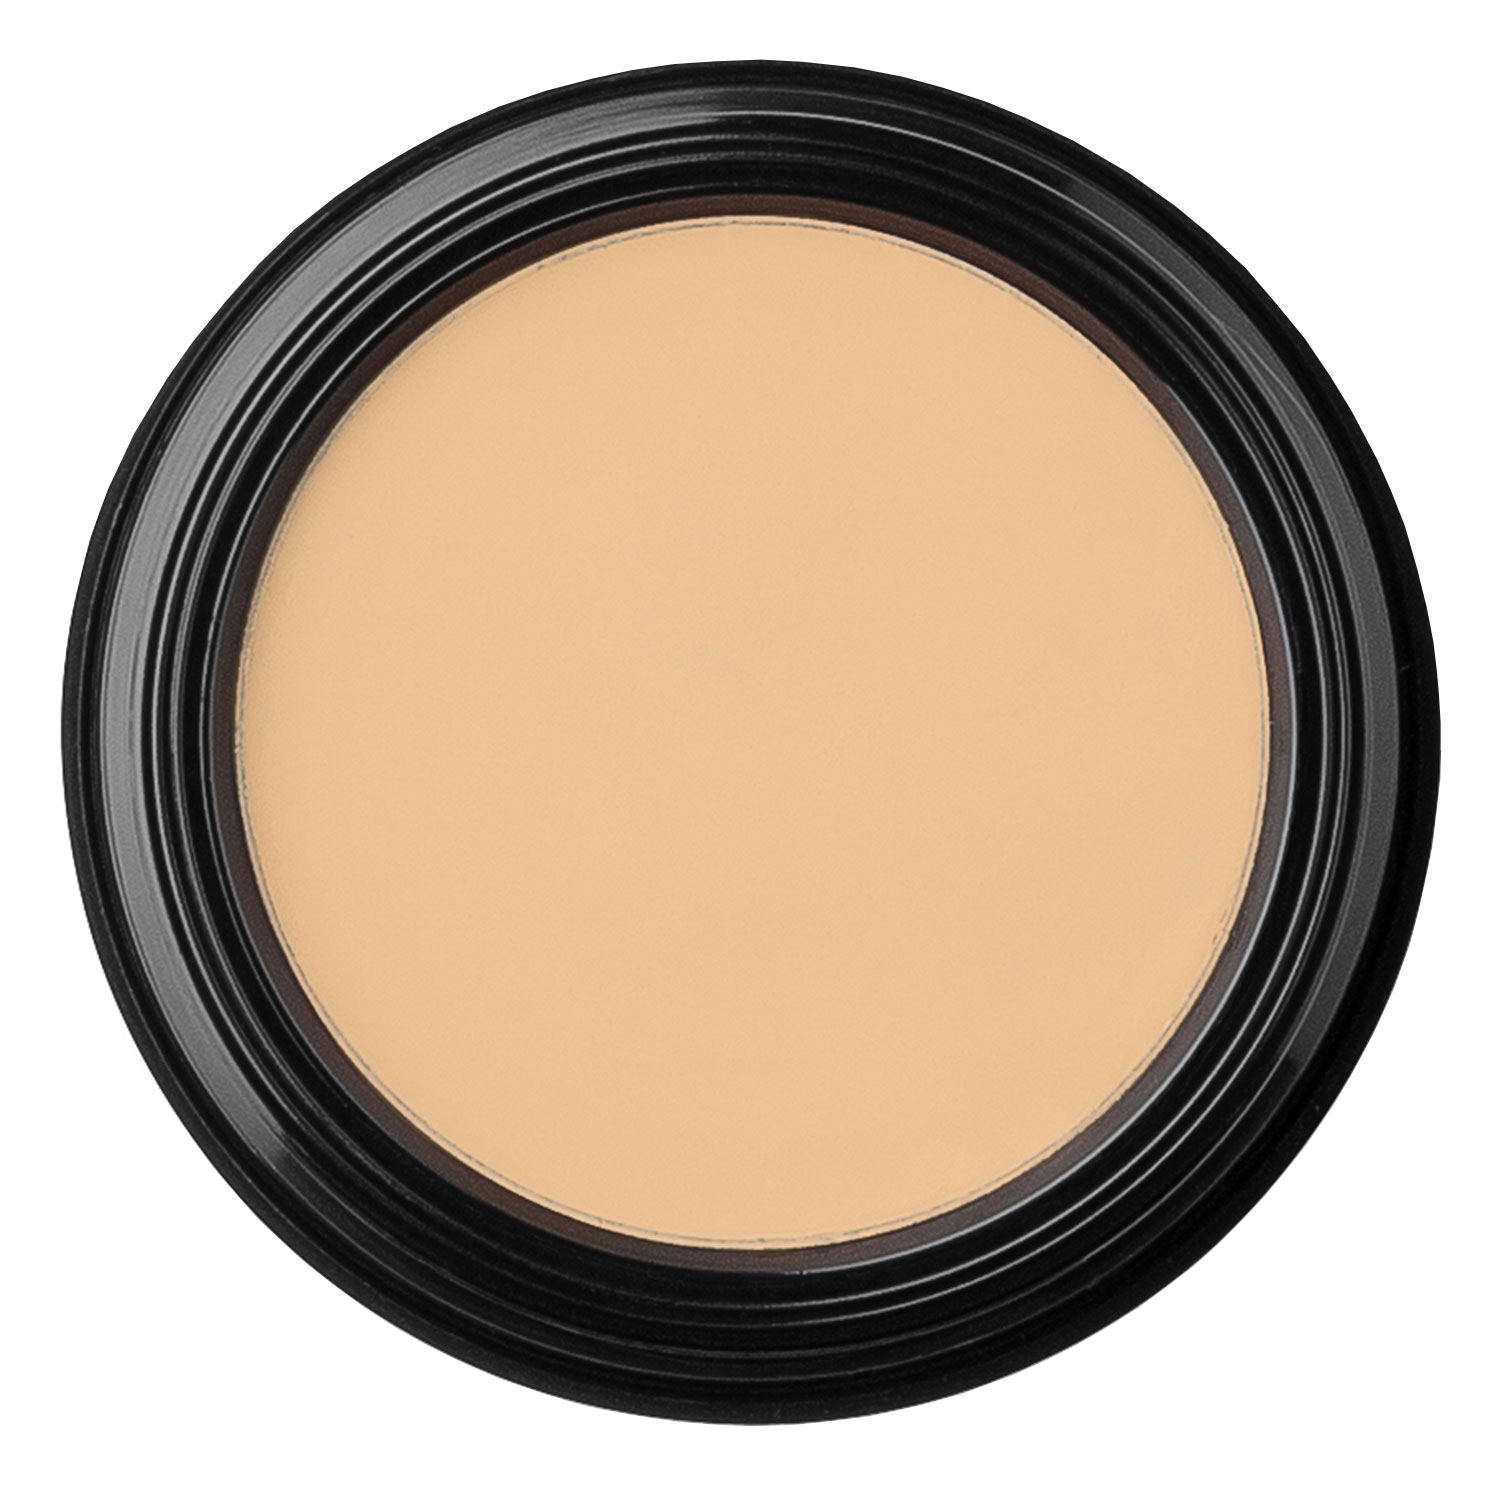 glo Camouflage - Oil free golden - 3.1g